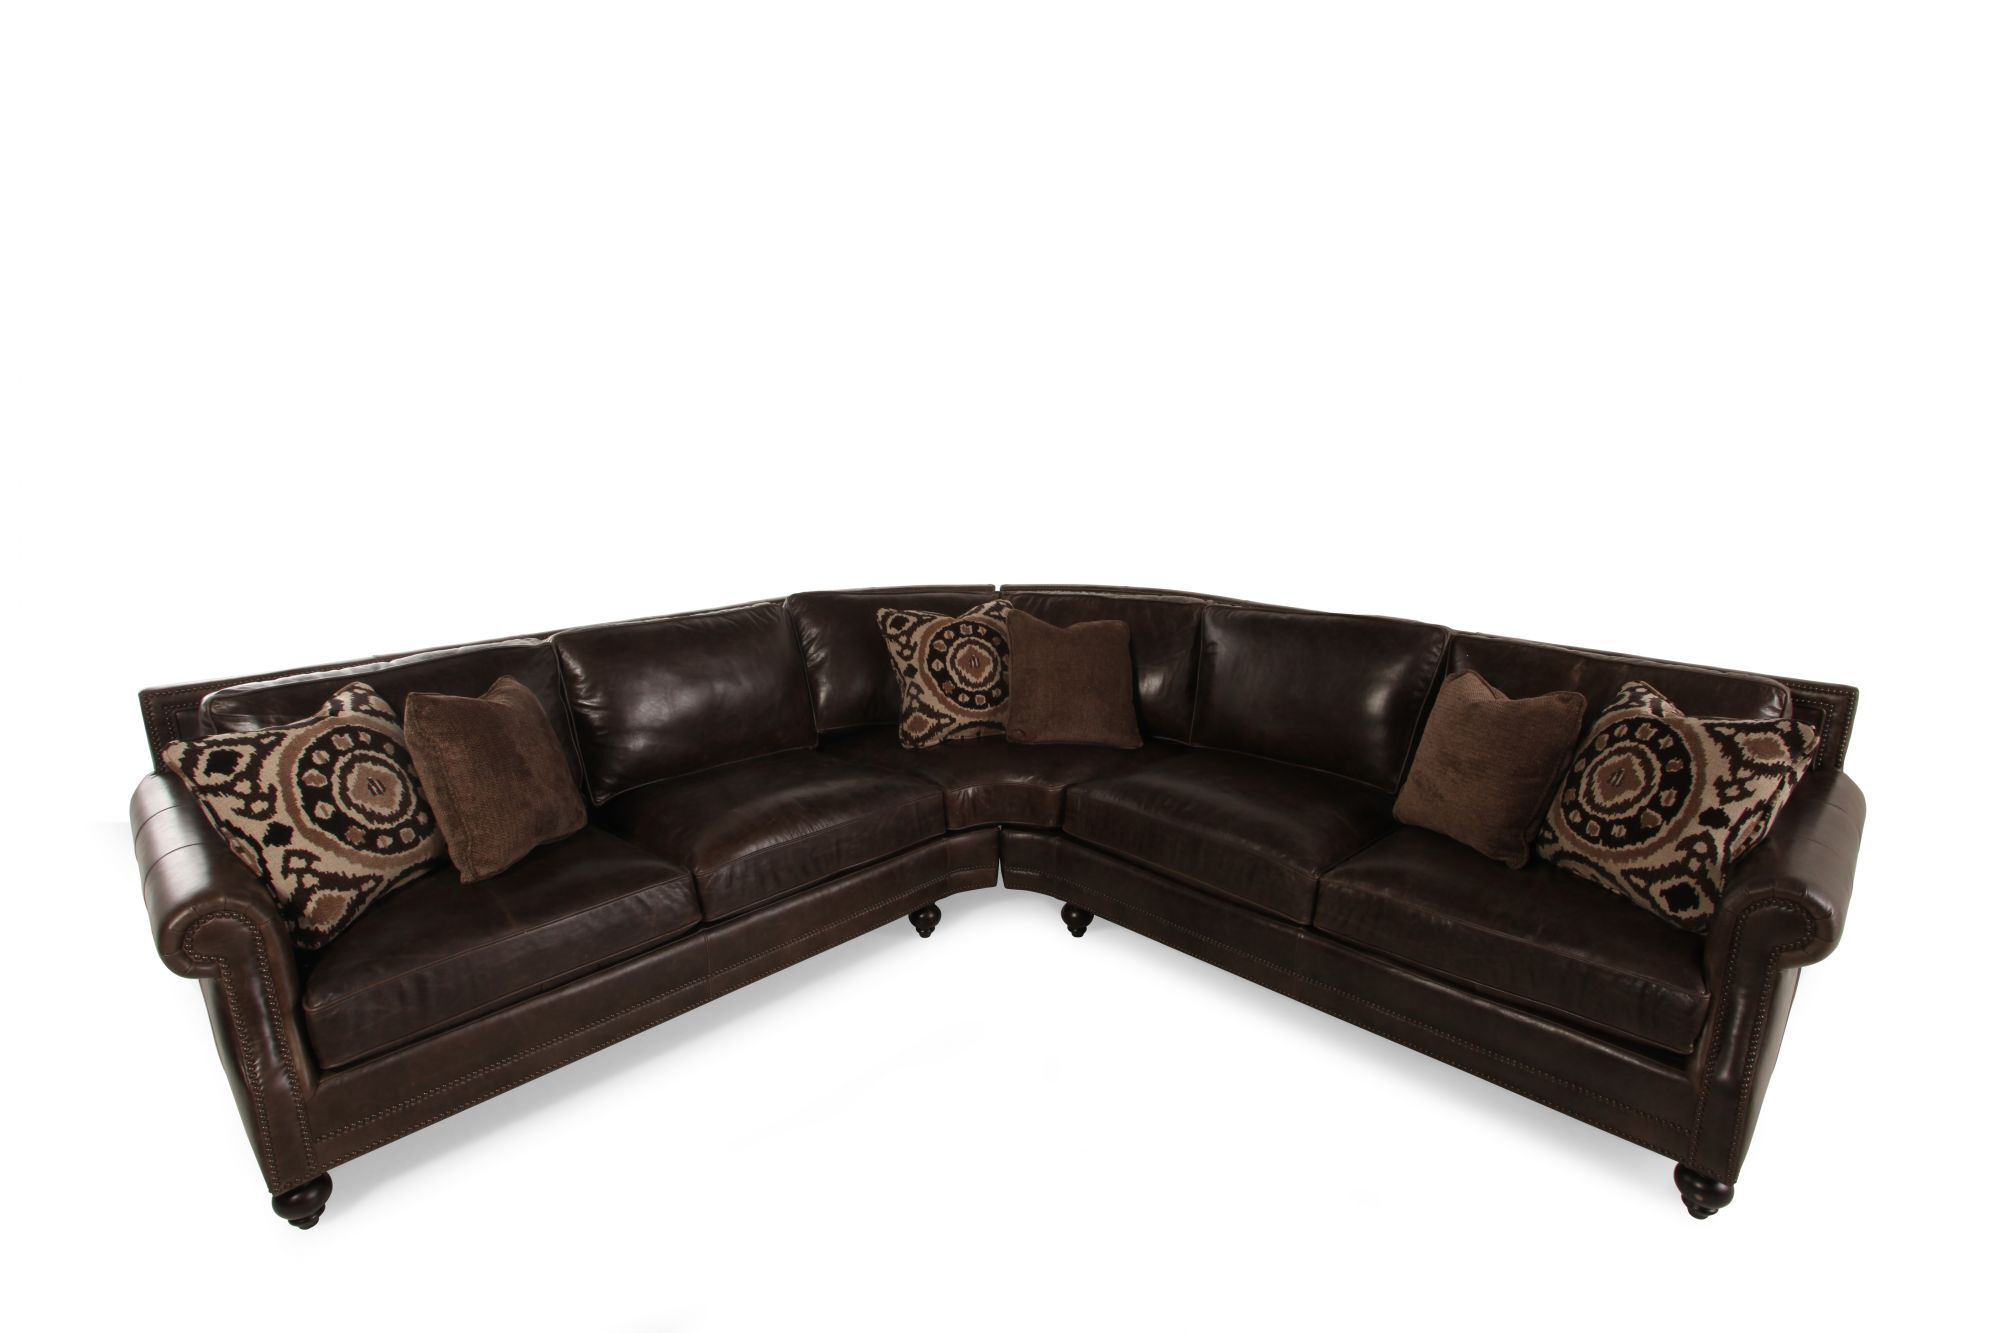 Bernhardt Brae Two-Piece Leather Sectional  sc 1 st  Mathis Brothers : bernhardt sectional leather - Sectionals, Sofas & Couches